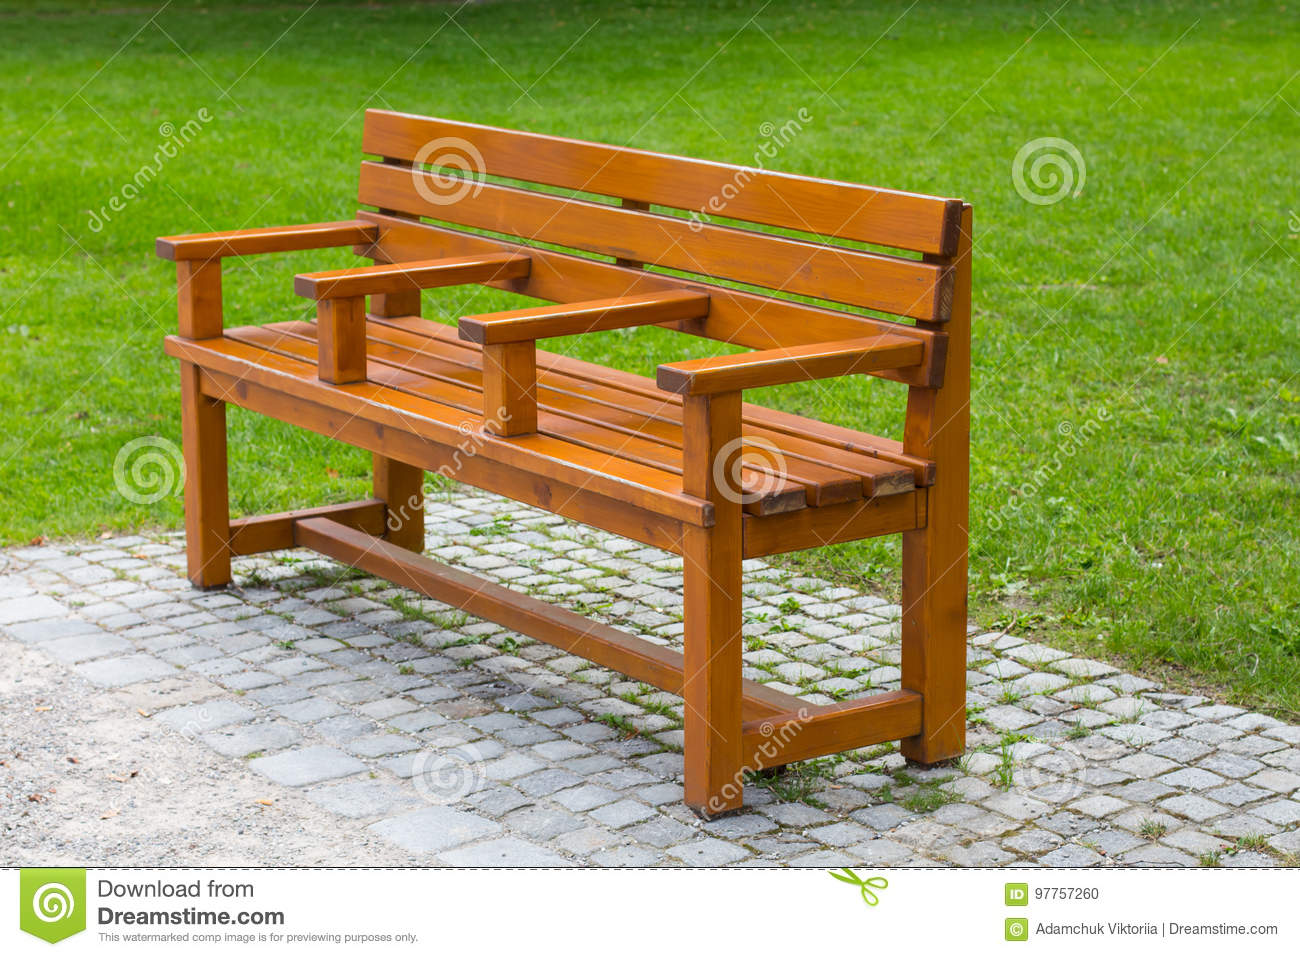 Interesting unusual wooden park bench at a park